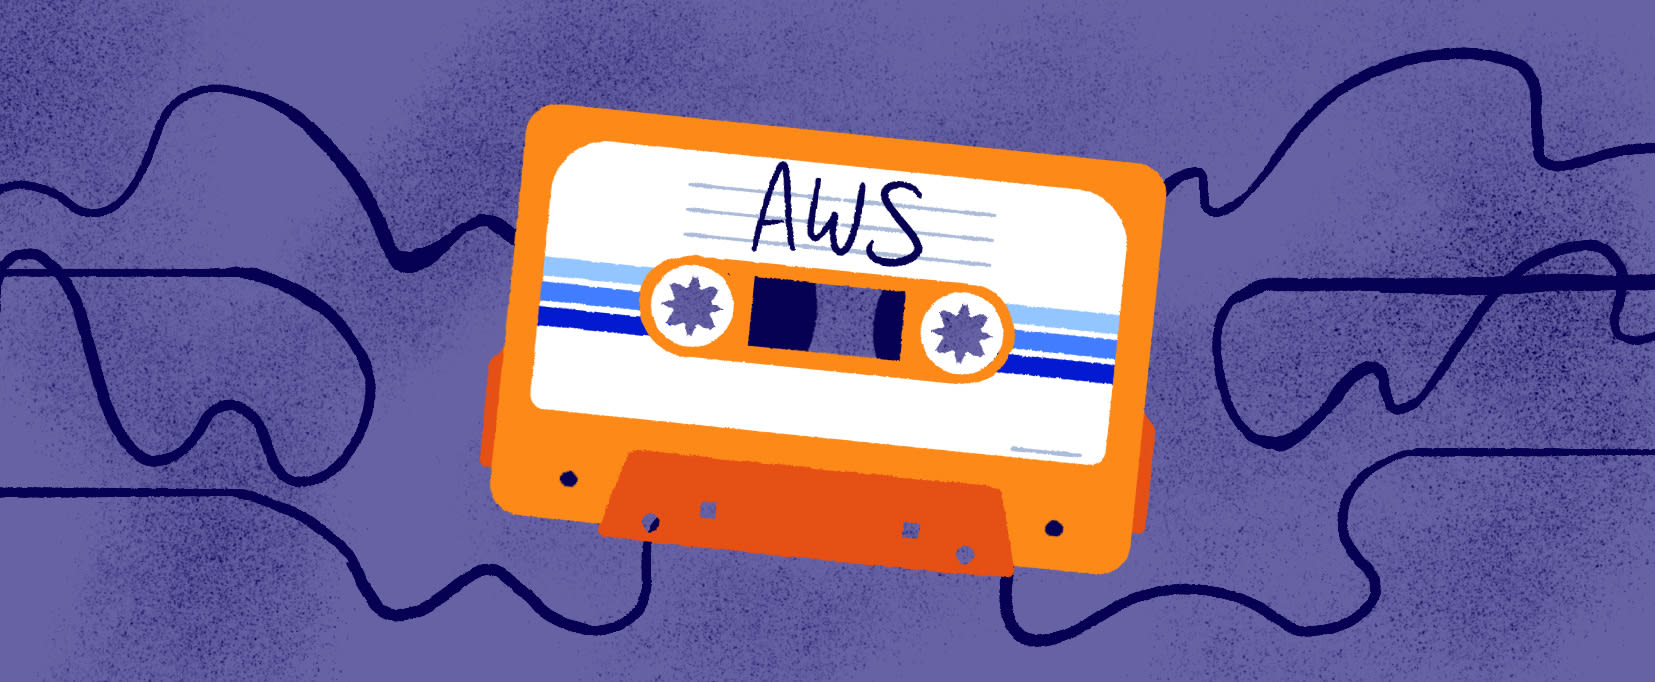 AWS Cloud Playlist Hands On Labs Mix